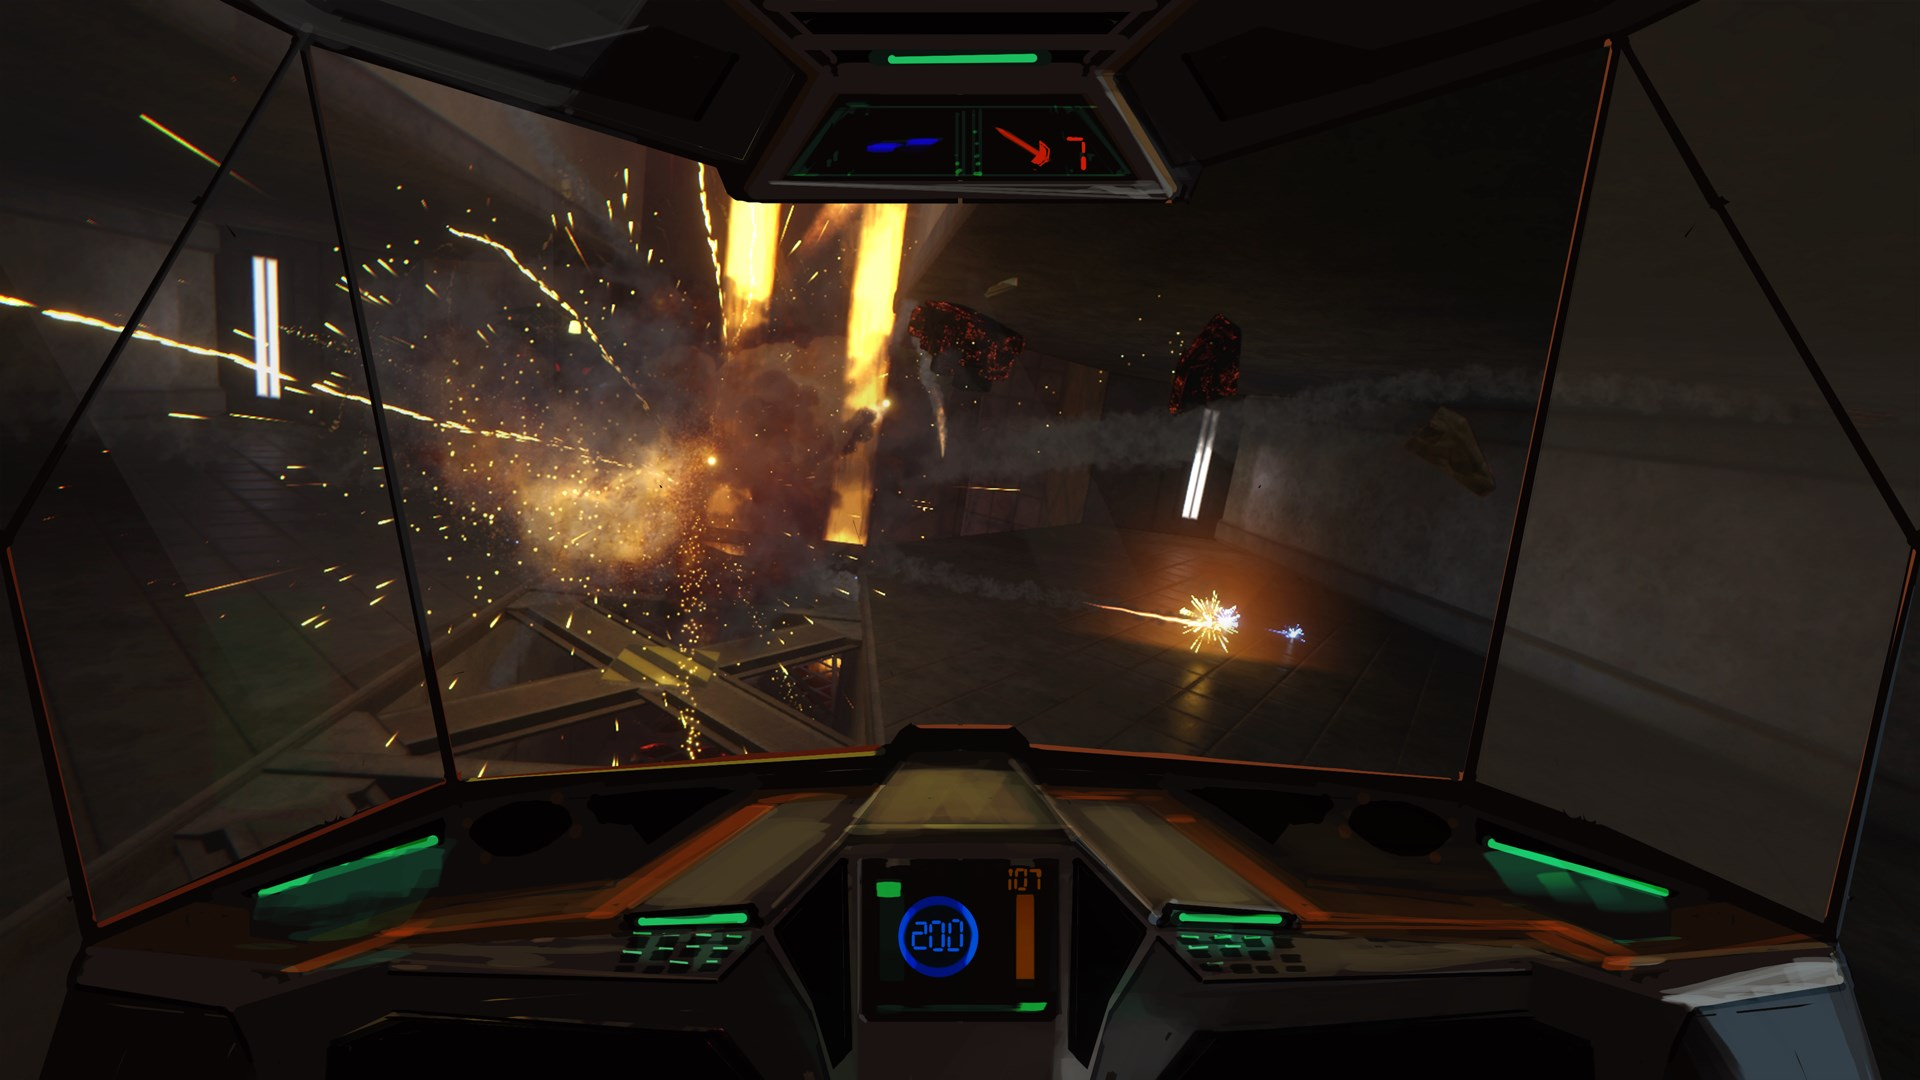 The Overload Kickstarter gets funded just two hours before